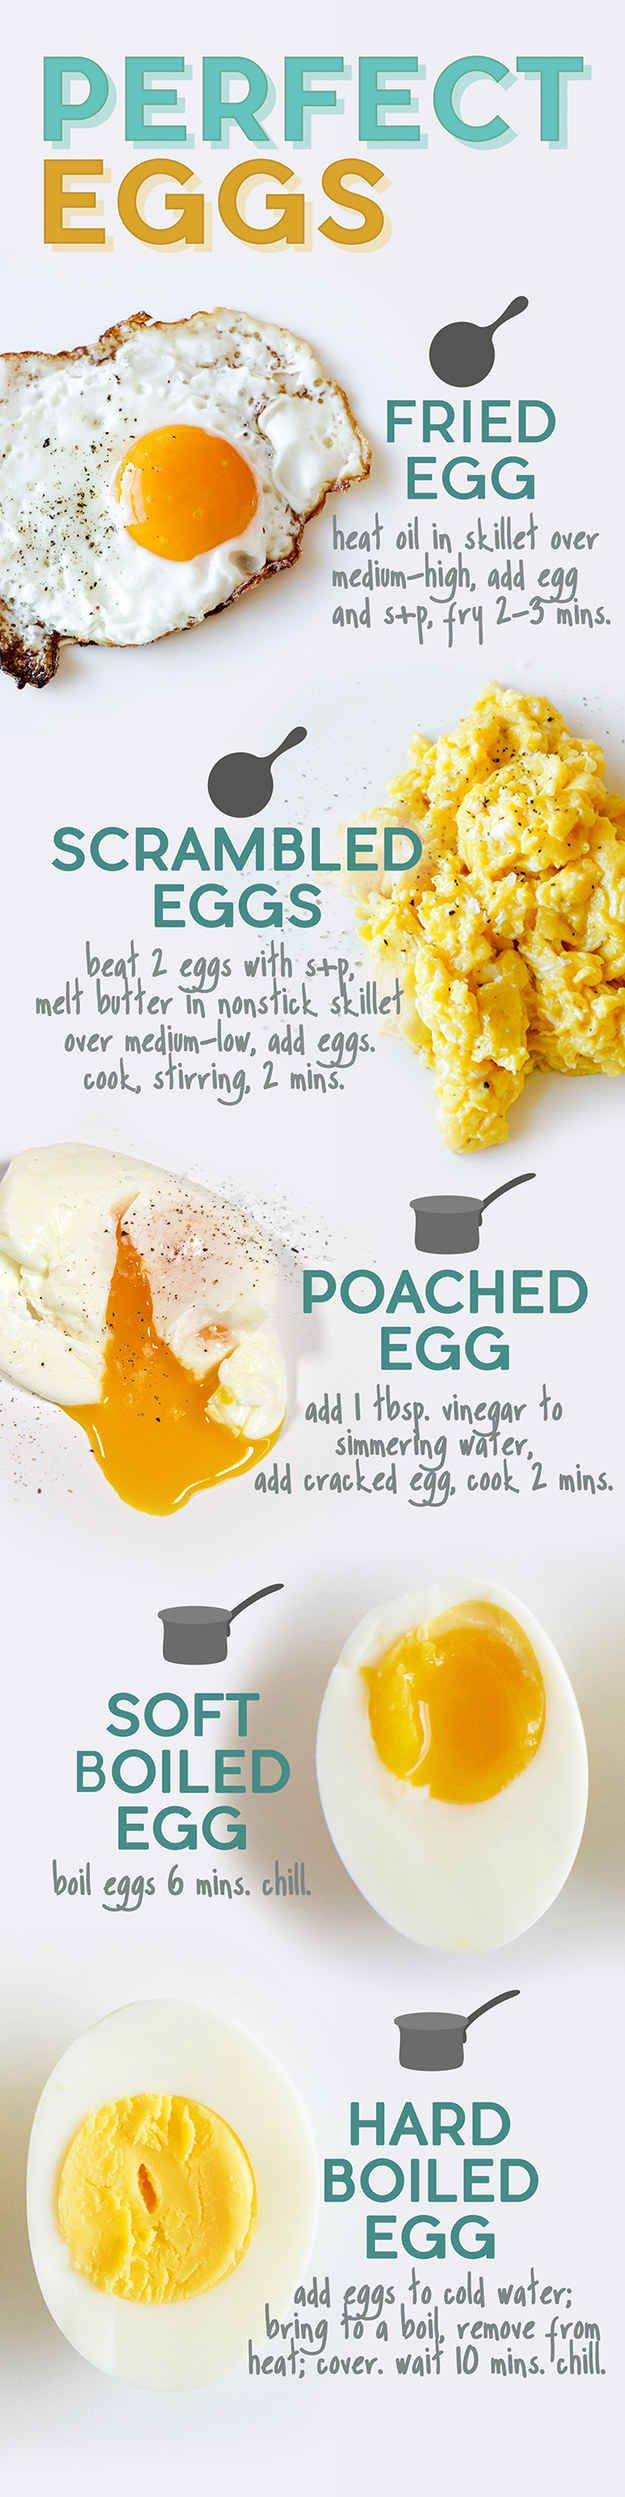 For more tips on how to cook every type of egg perfectly, head HERE.